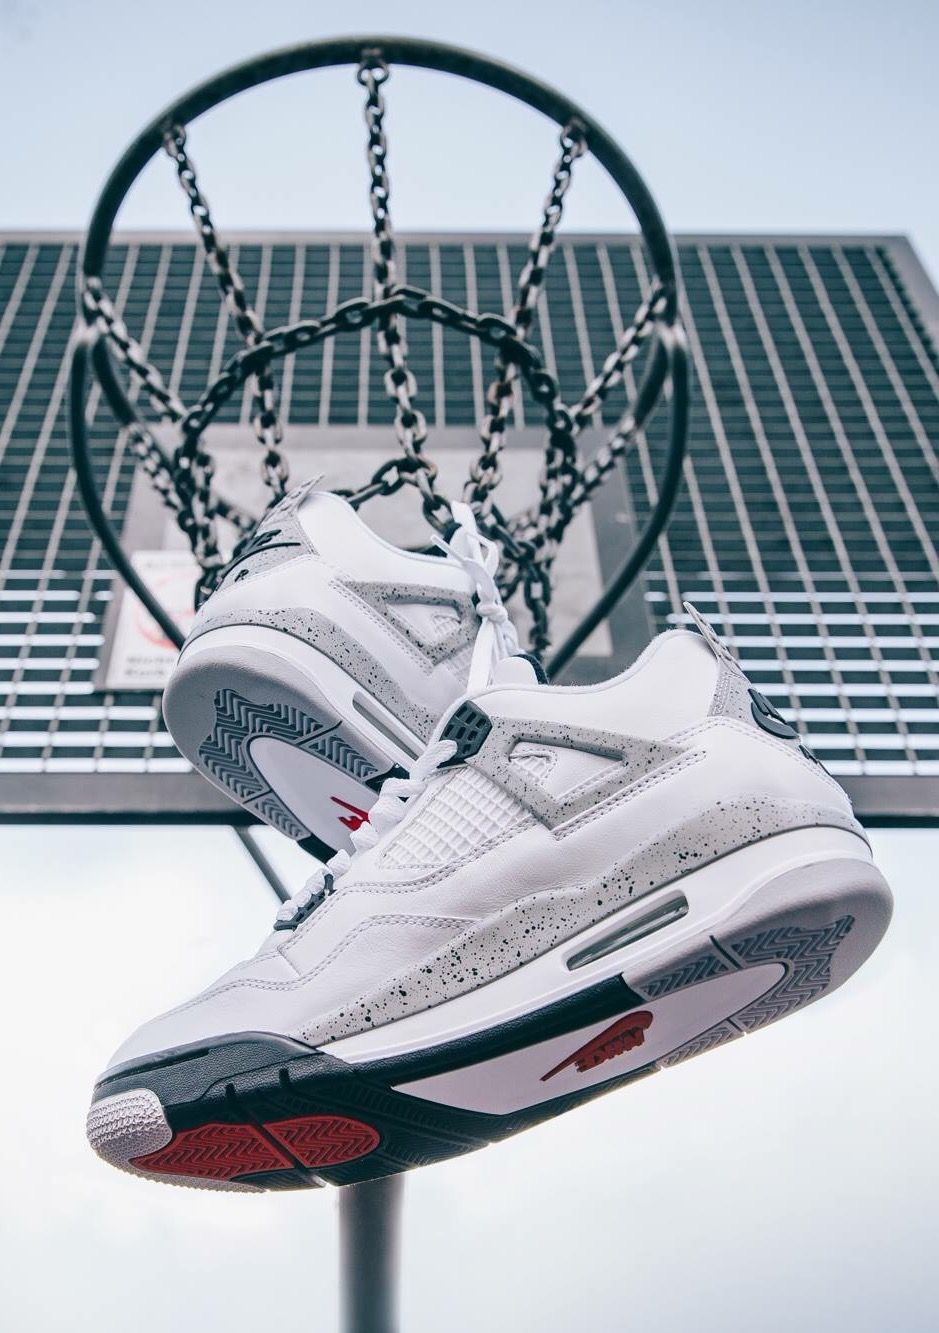 hot sale online 45660 27300 Nike Air Jordan IV  White Cement  shopping now on the website  www.diybrands.co can get 10%-15% discount with the original package and  fast delivery provides ...